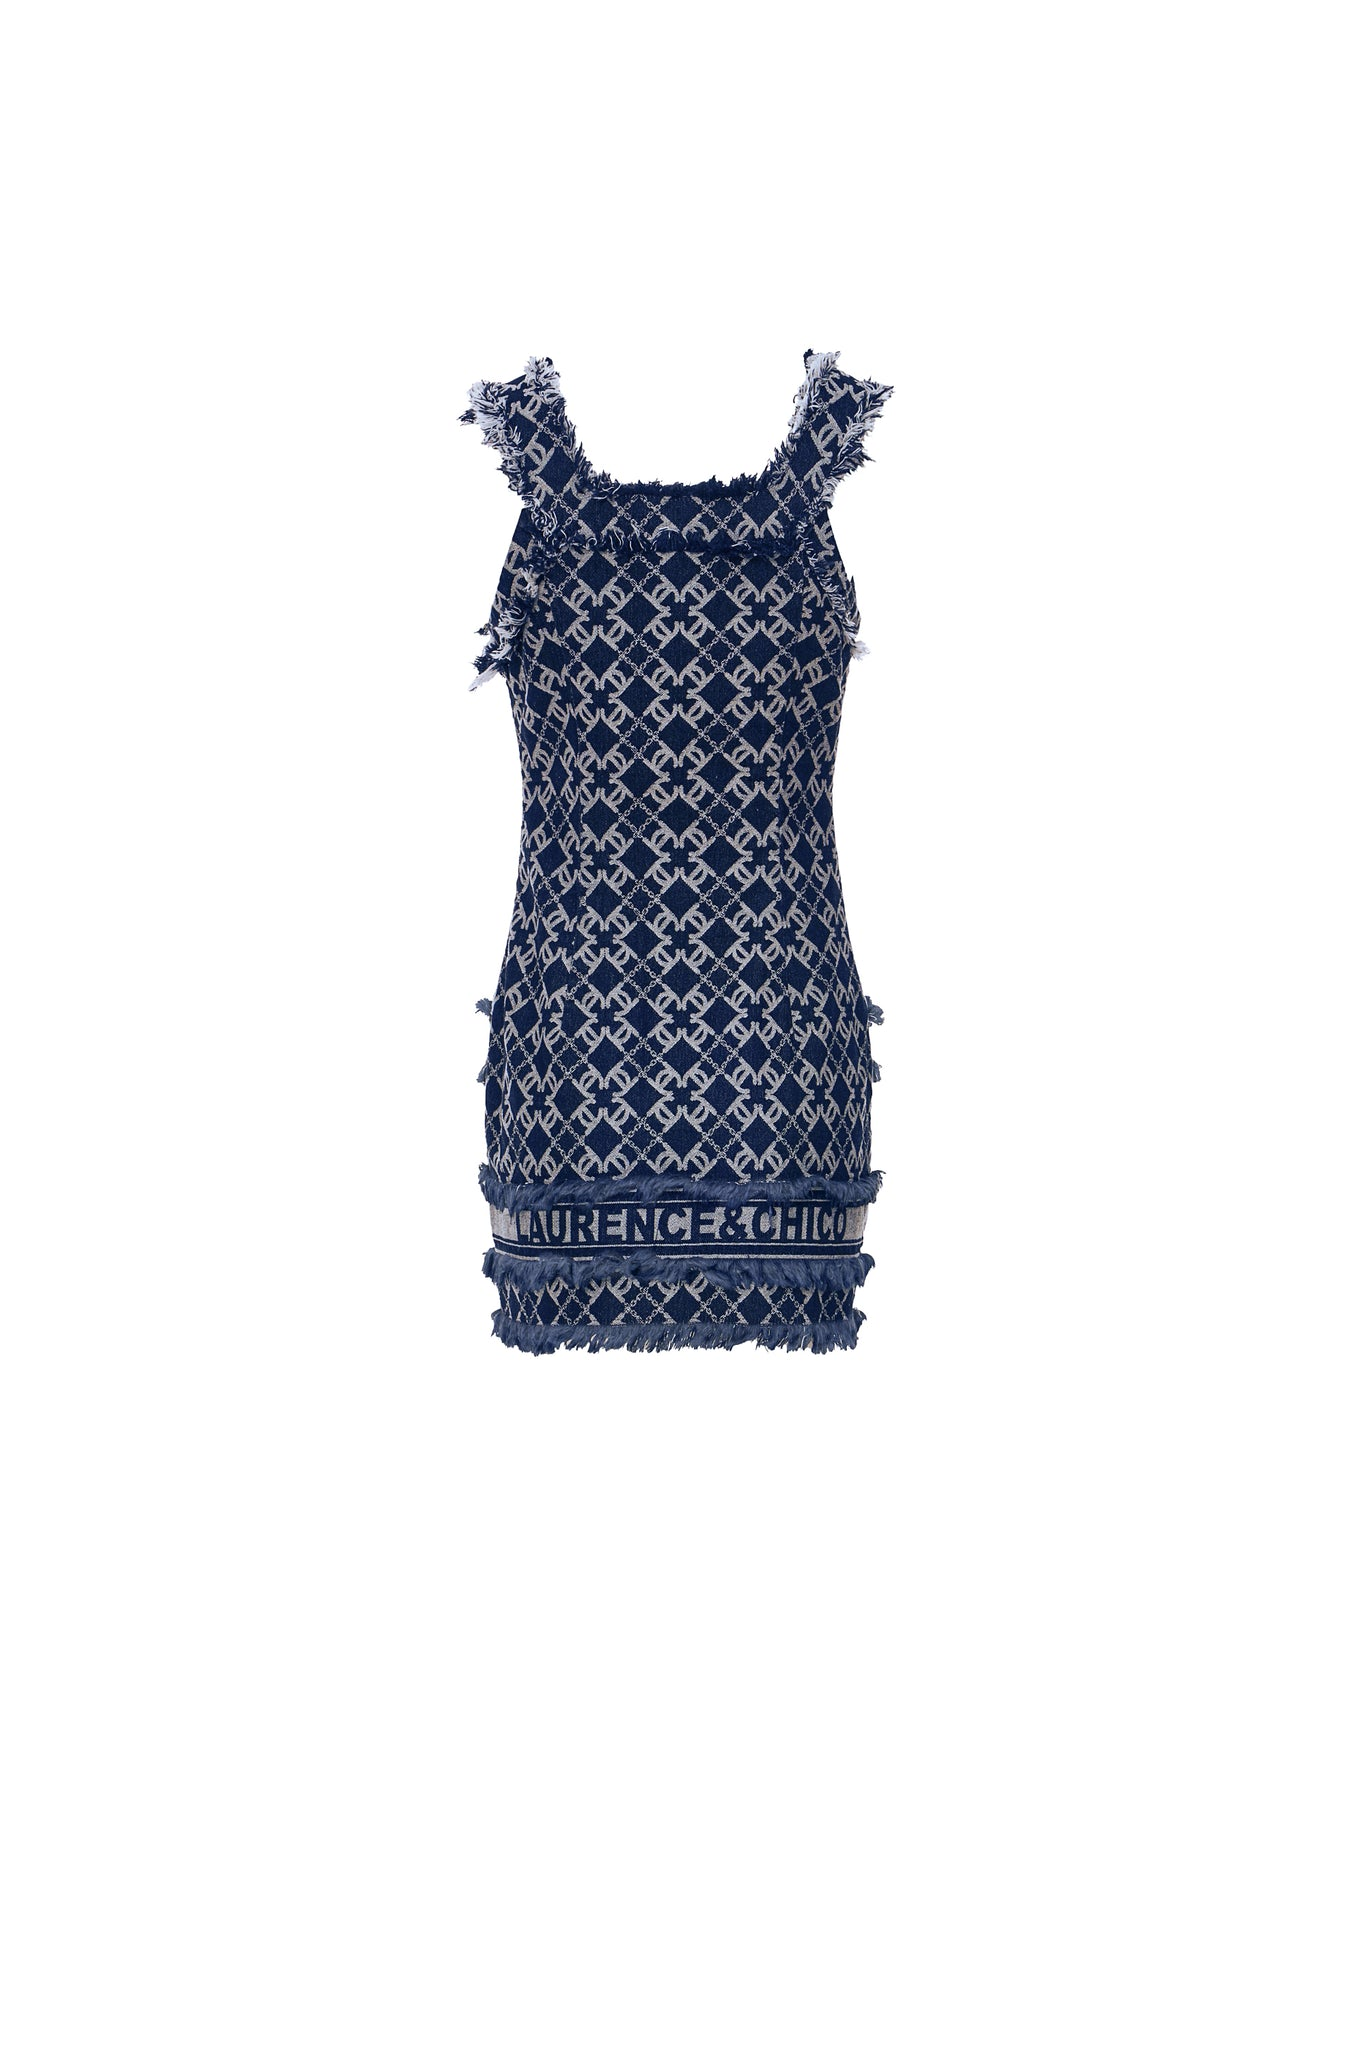 LC Logo Denim Jacquard Tailored Short Dress, Navy